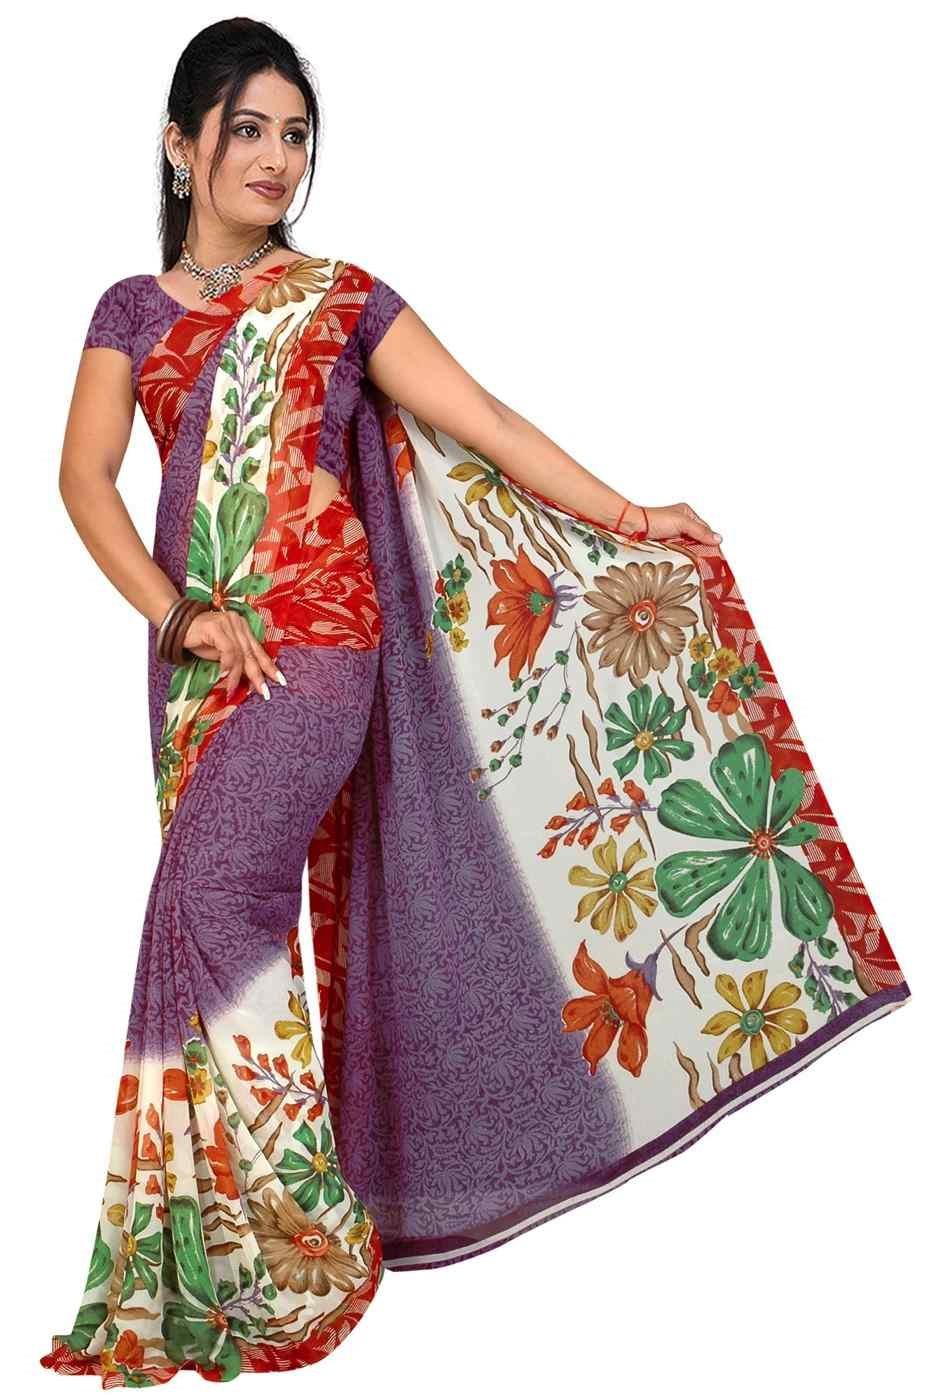 Indian Selections Bhavi Georgette Printed Casual Saree Sari Bellydance fabric at Sears.com